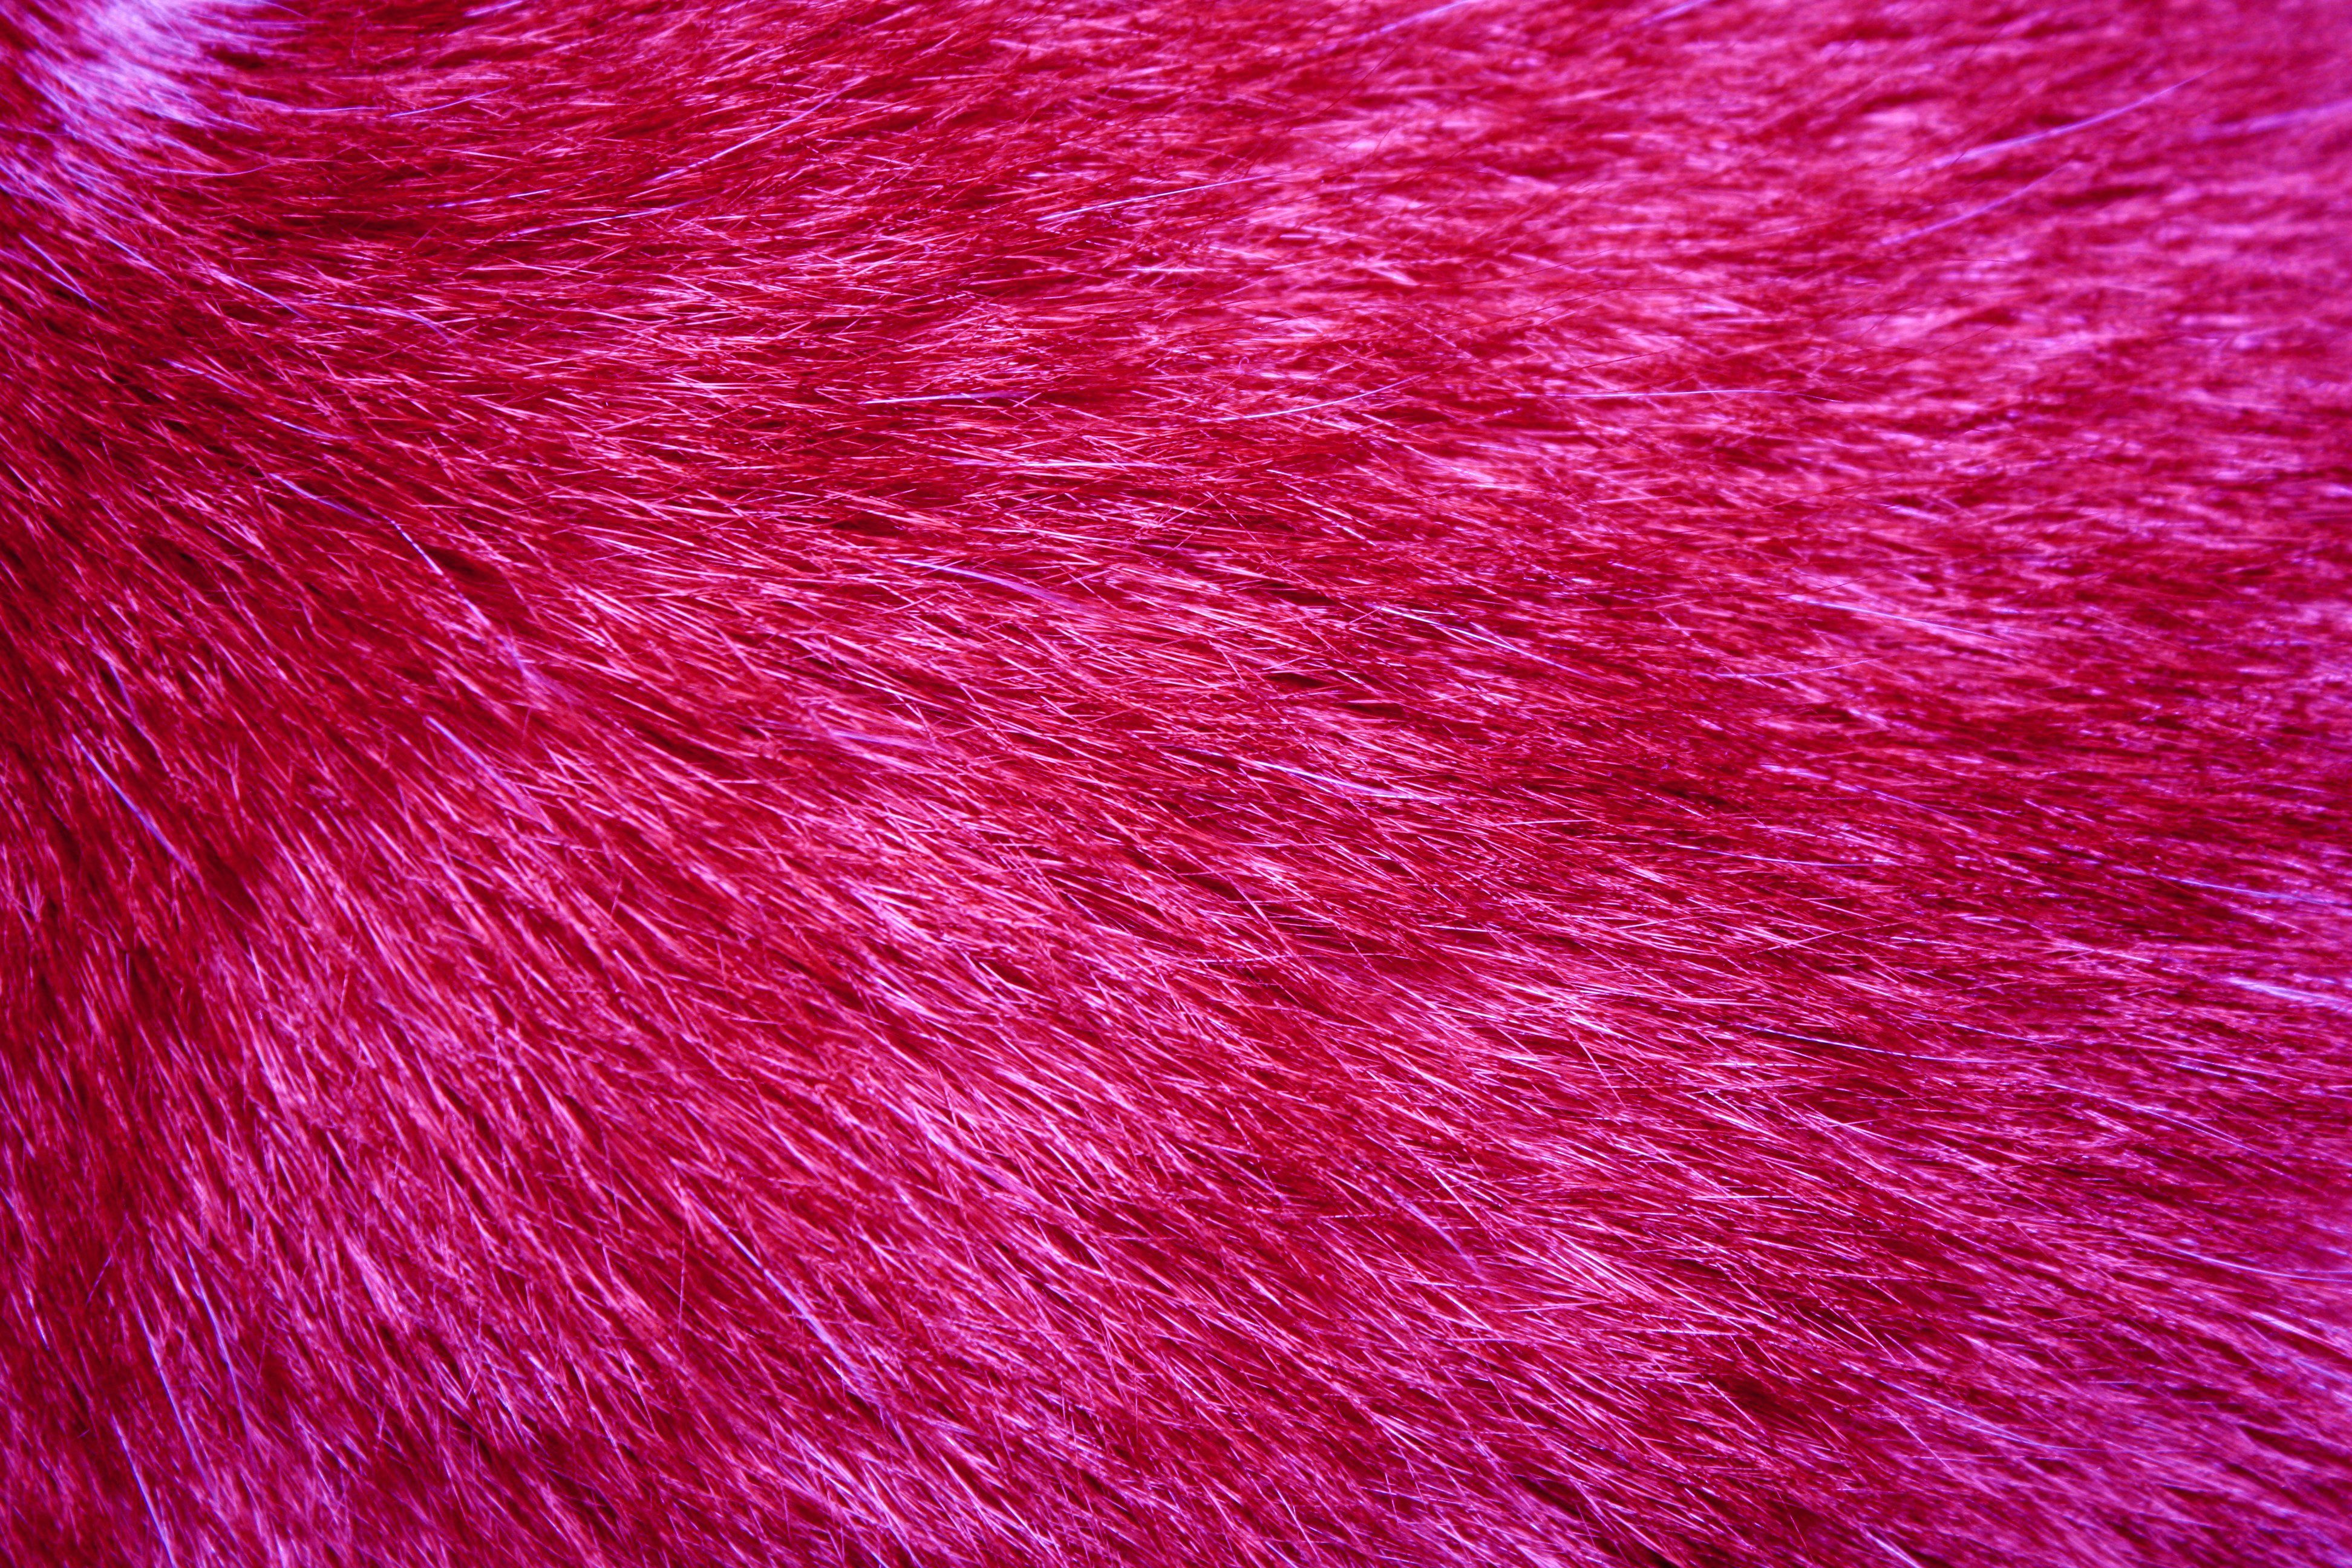 Hot Pink Wallpaper - Hot Pink Fur Hd - HD Wallpaper